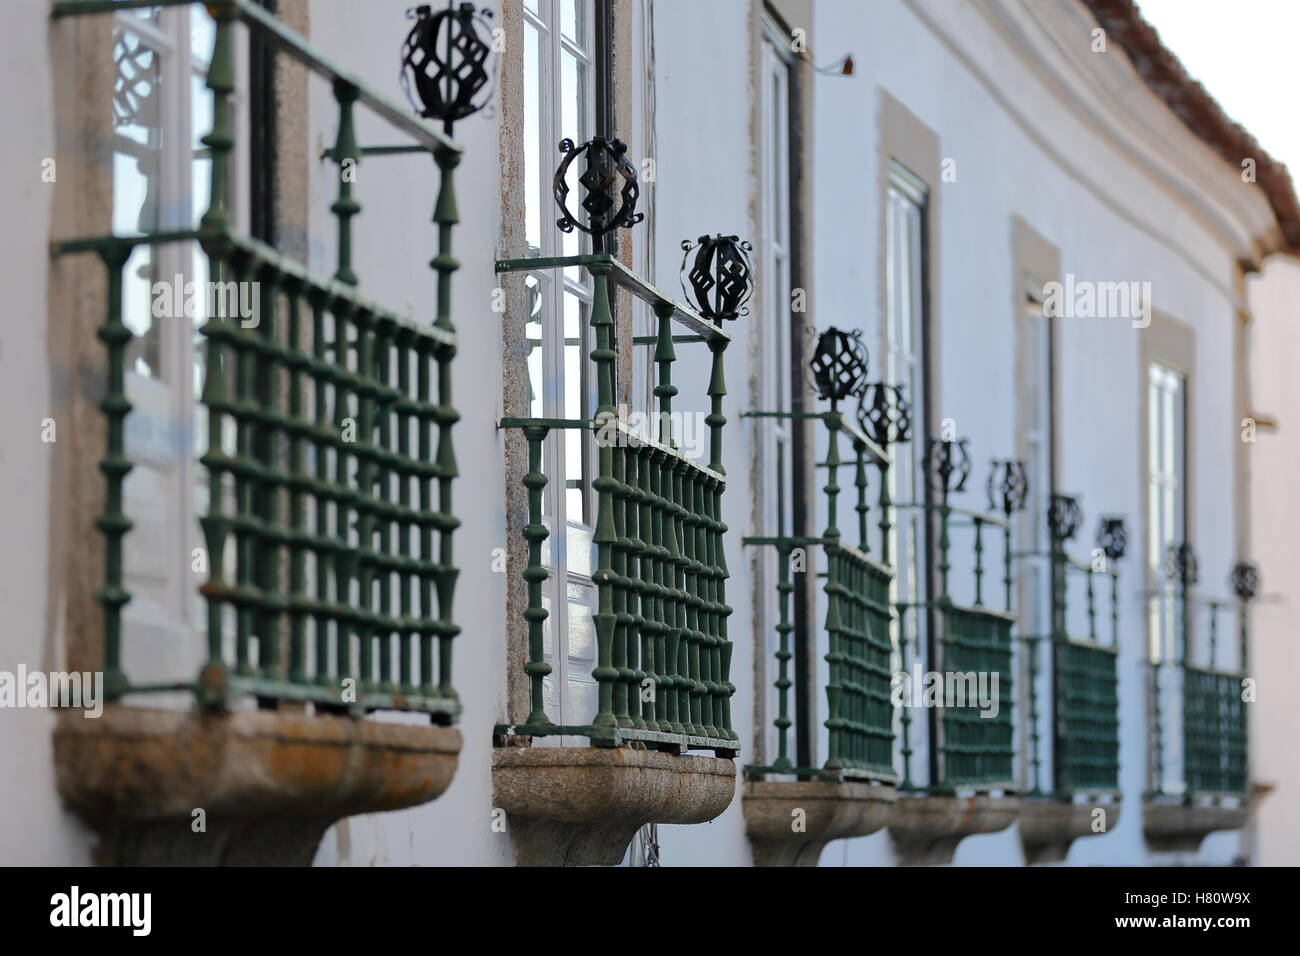 EVORA, PORTUGAL: Alignment of balconies with wrought iron railing - Stock Image